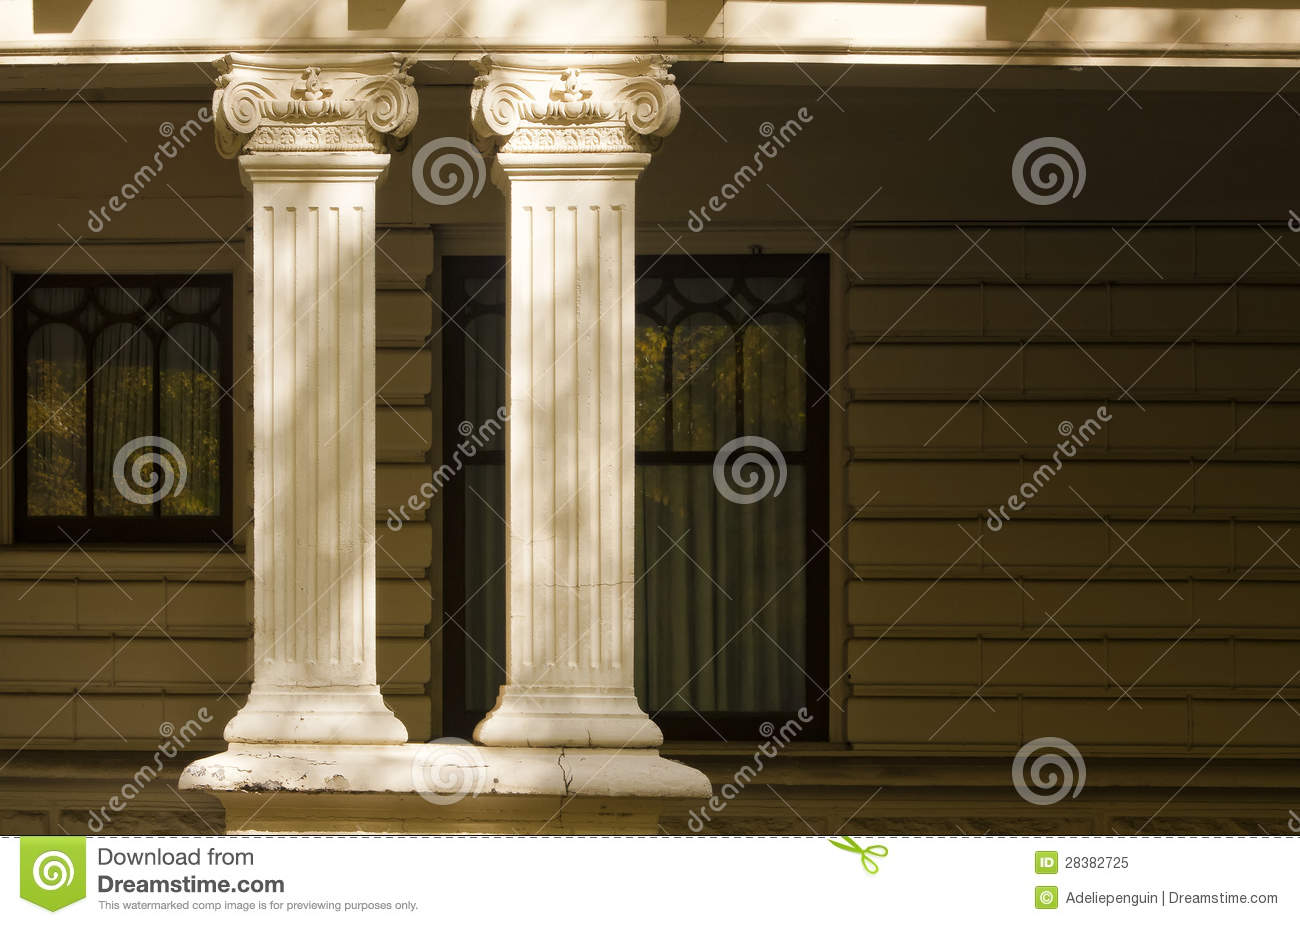 Decorative Columns Residential Architecture Royalty Free